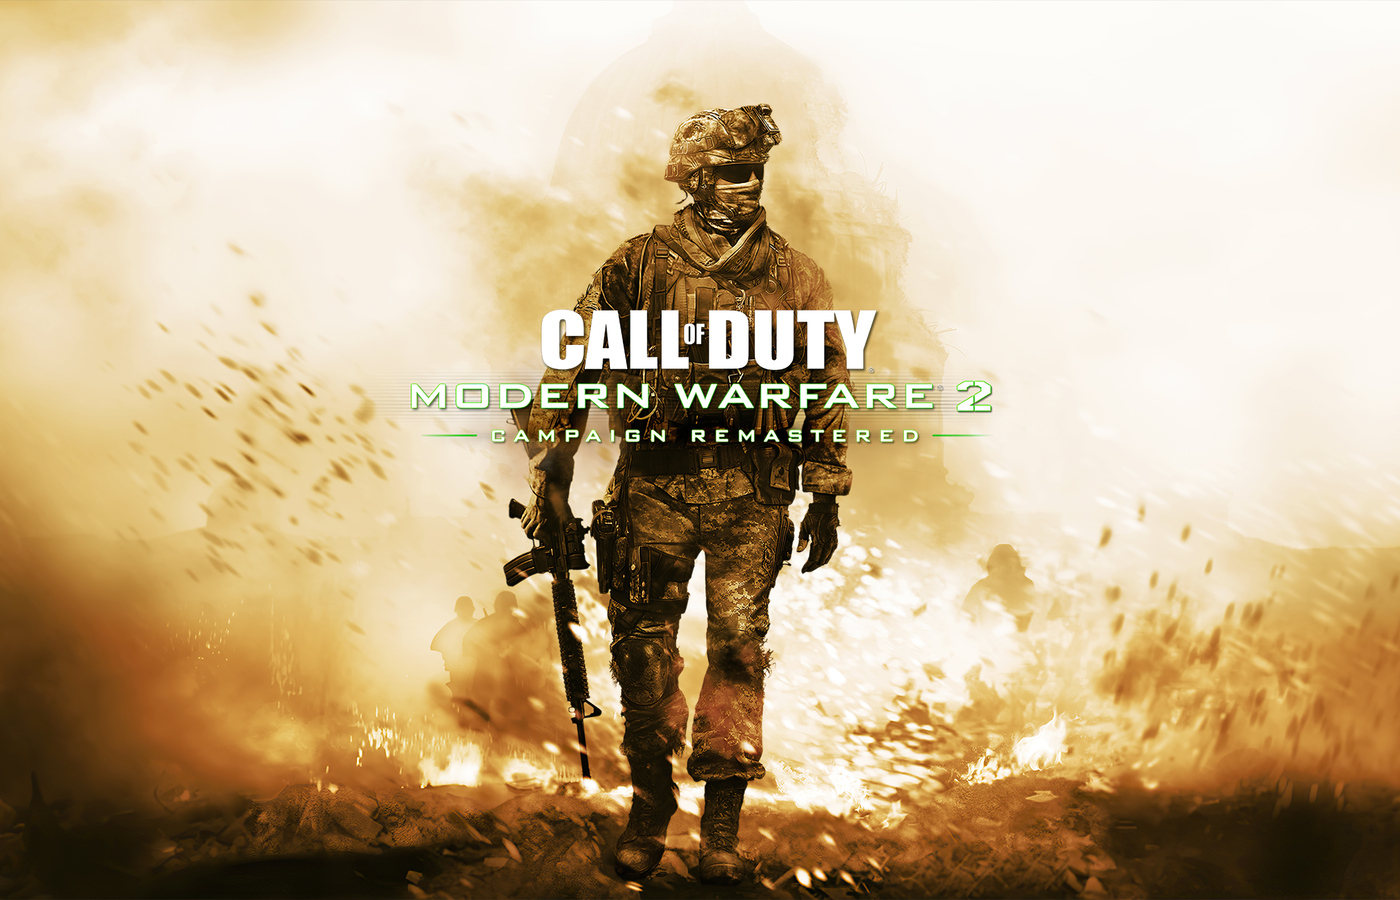 call-of-duty-modern-warfare-2-campaign-remastered-4k-vw.jpg